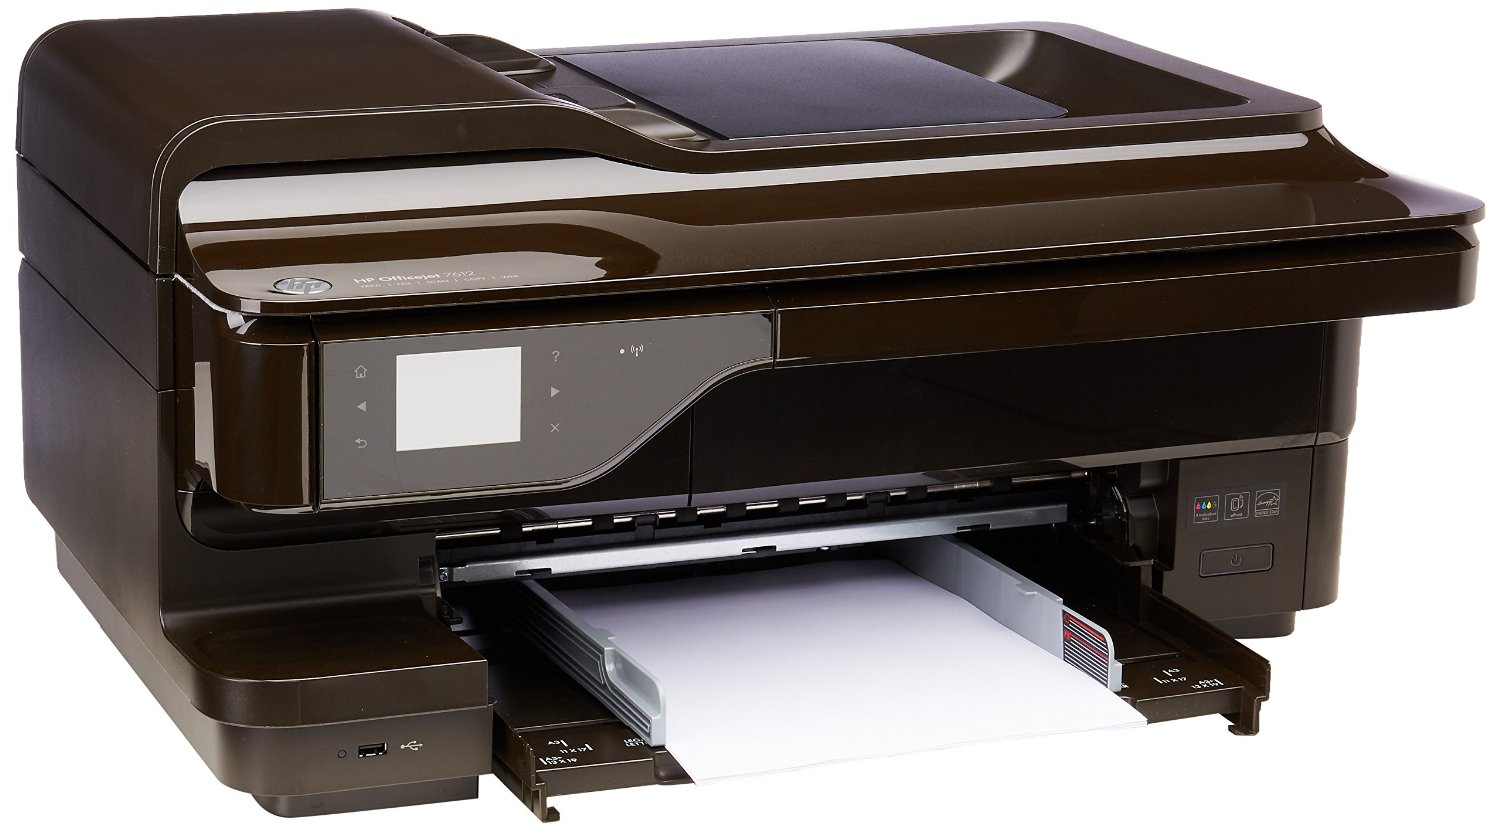 HP OfficeJet 7612 Wide Format All-in-One Photo Printer with Wireless & Mobile Printing (G1X85A)